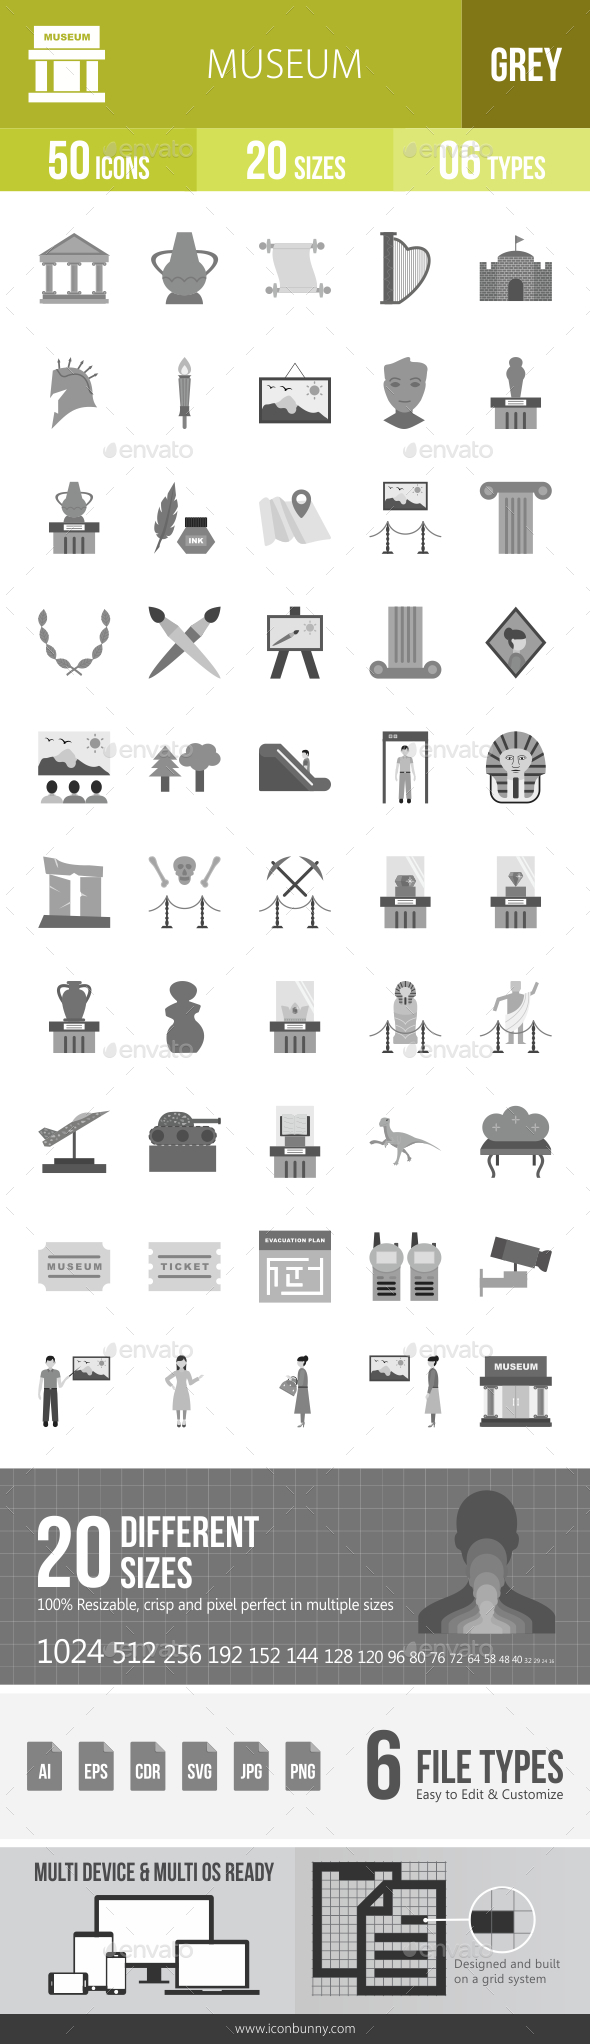 Museum Greyscale Icons - Icons